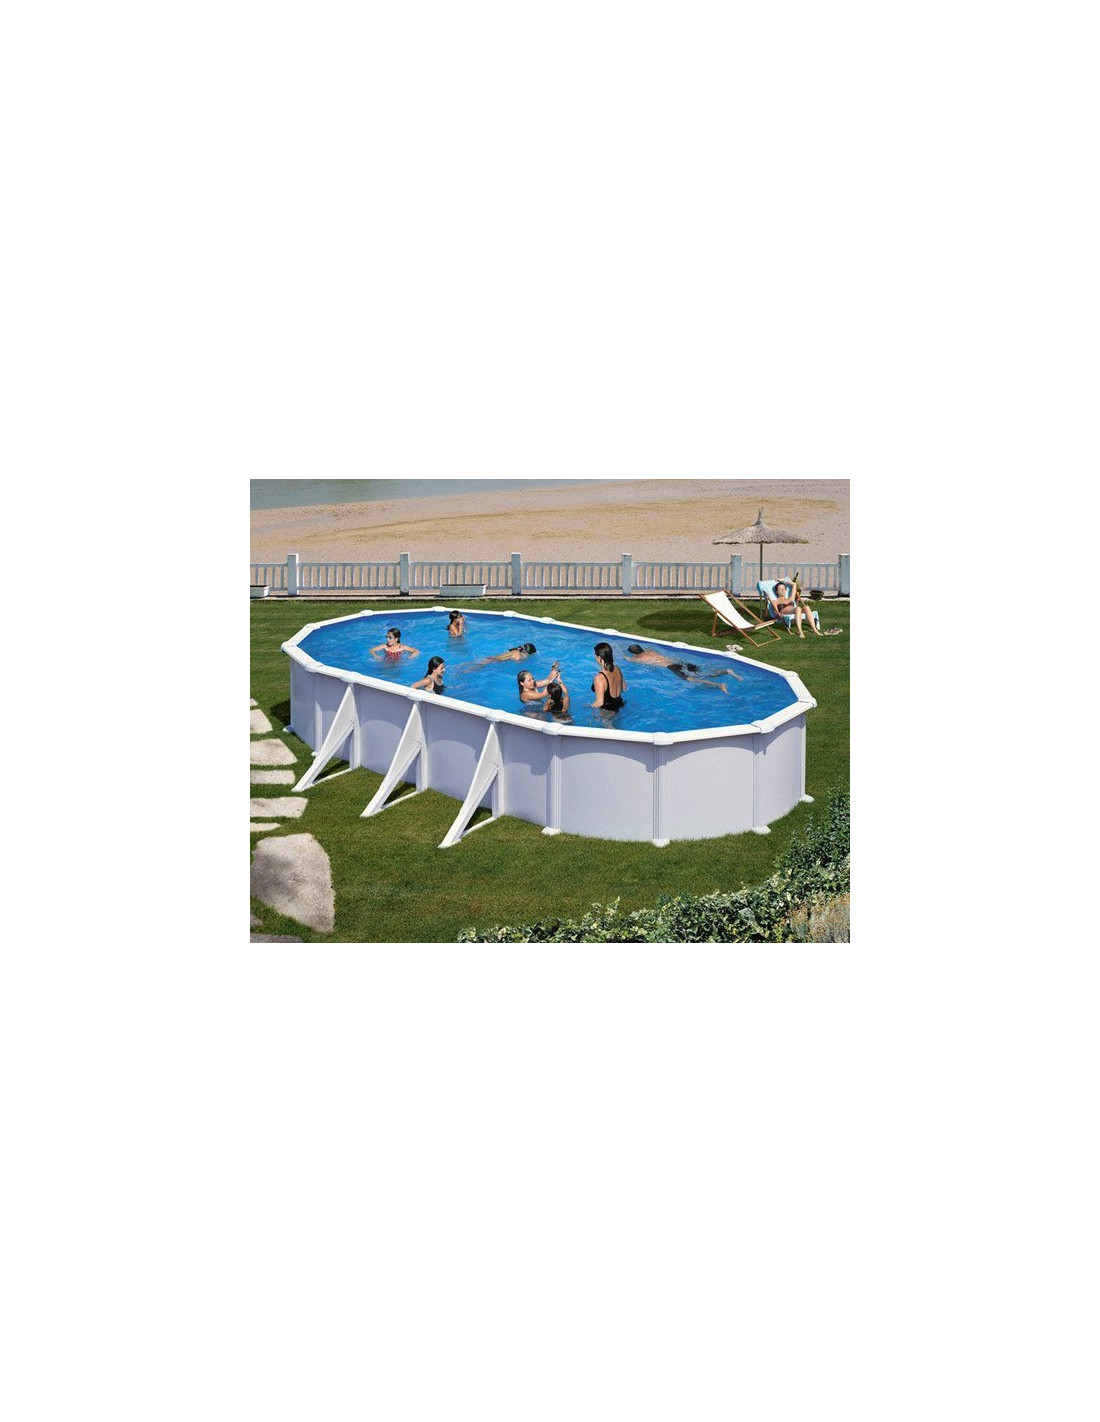 piscine bois hors sol 10 x 5 m achat vente piscine of. Black Bedroom Furniture Sets. Home Design Ideas